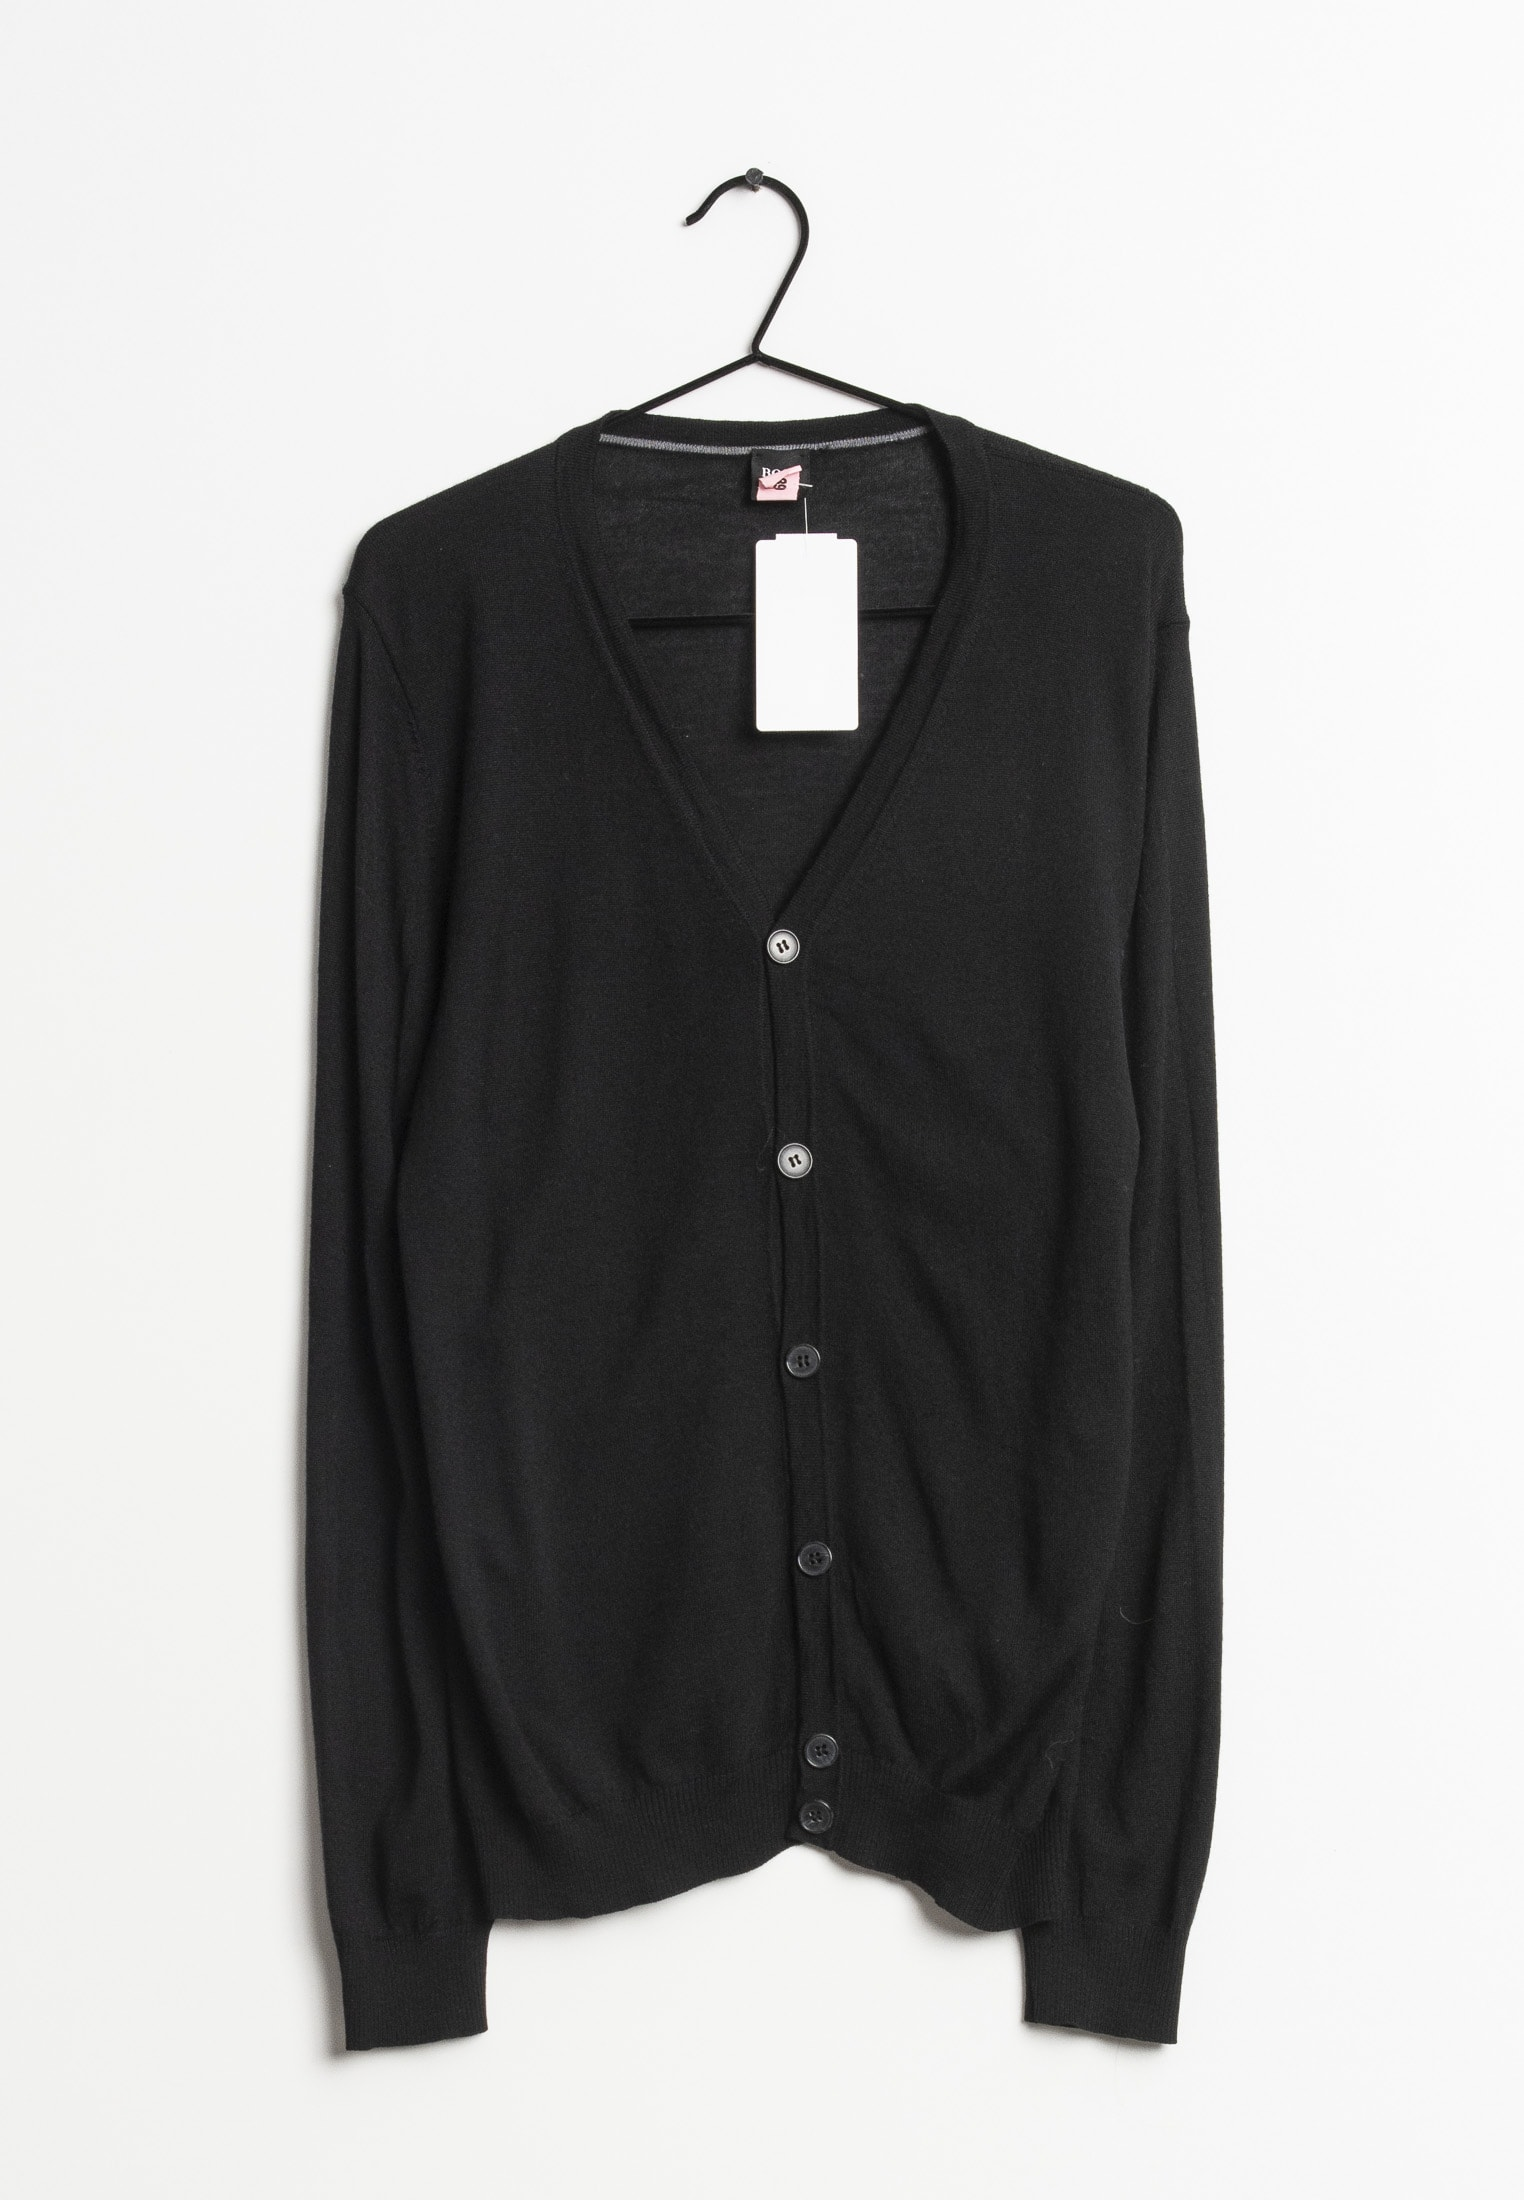 BOSS cardigan, sort, L